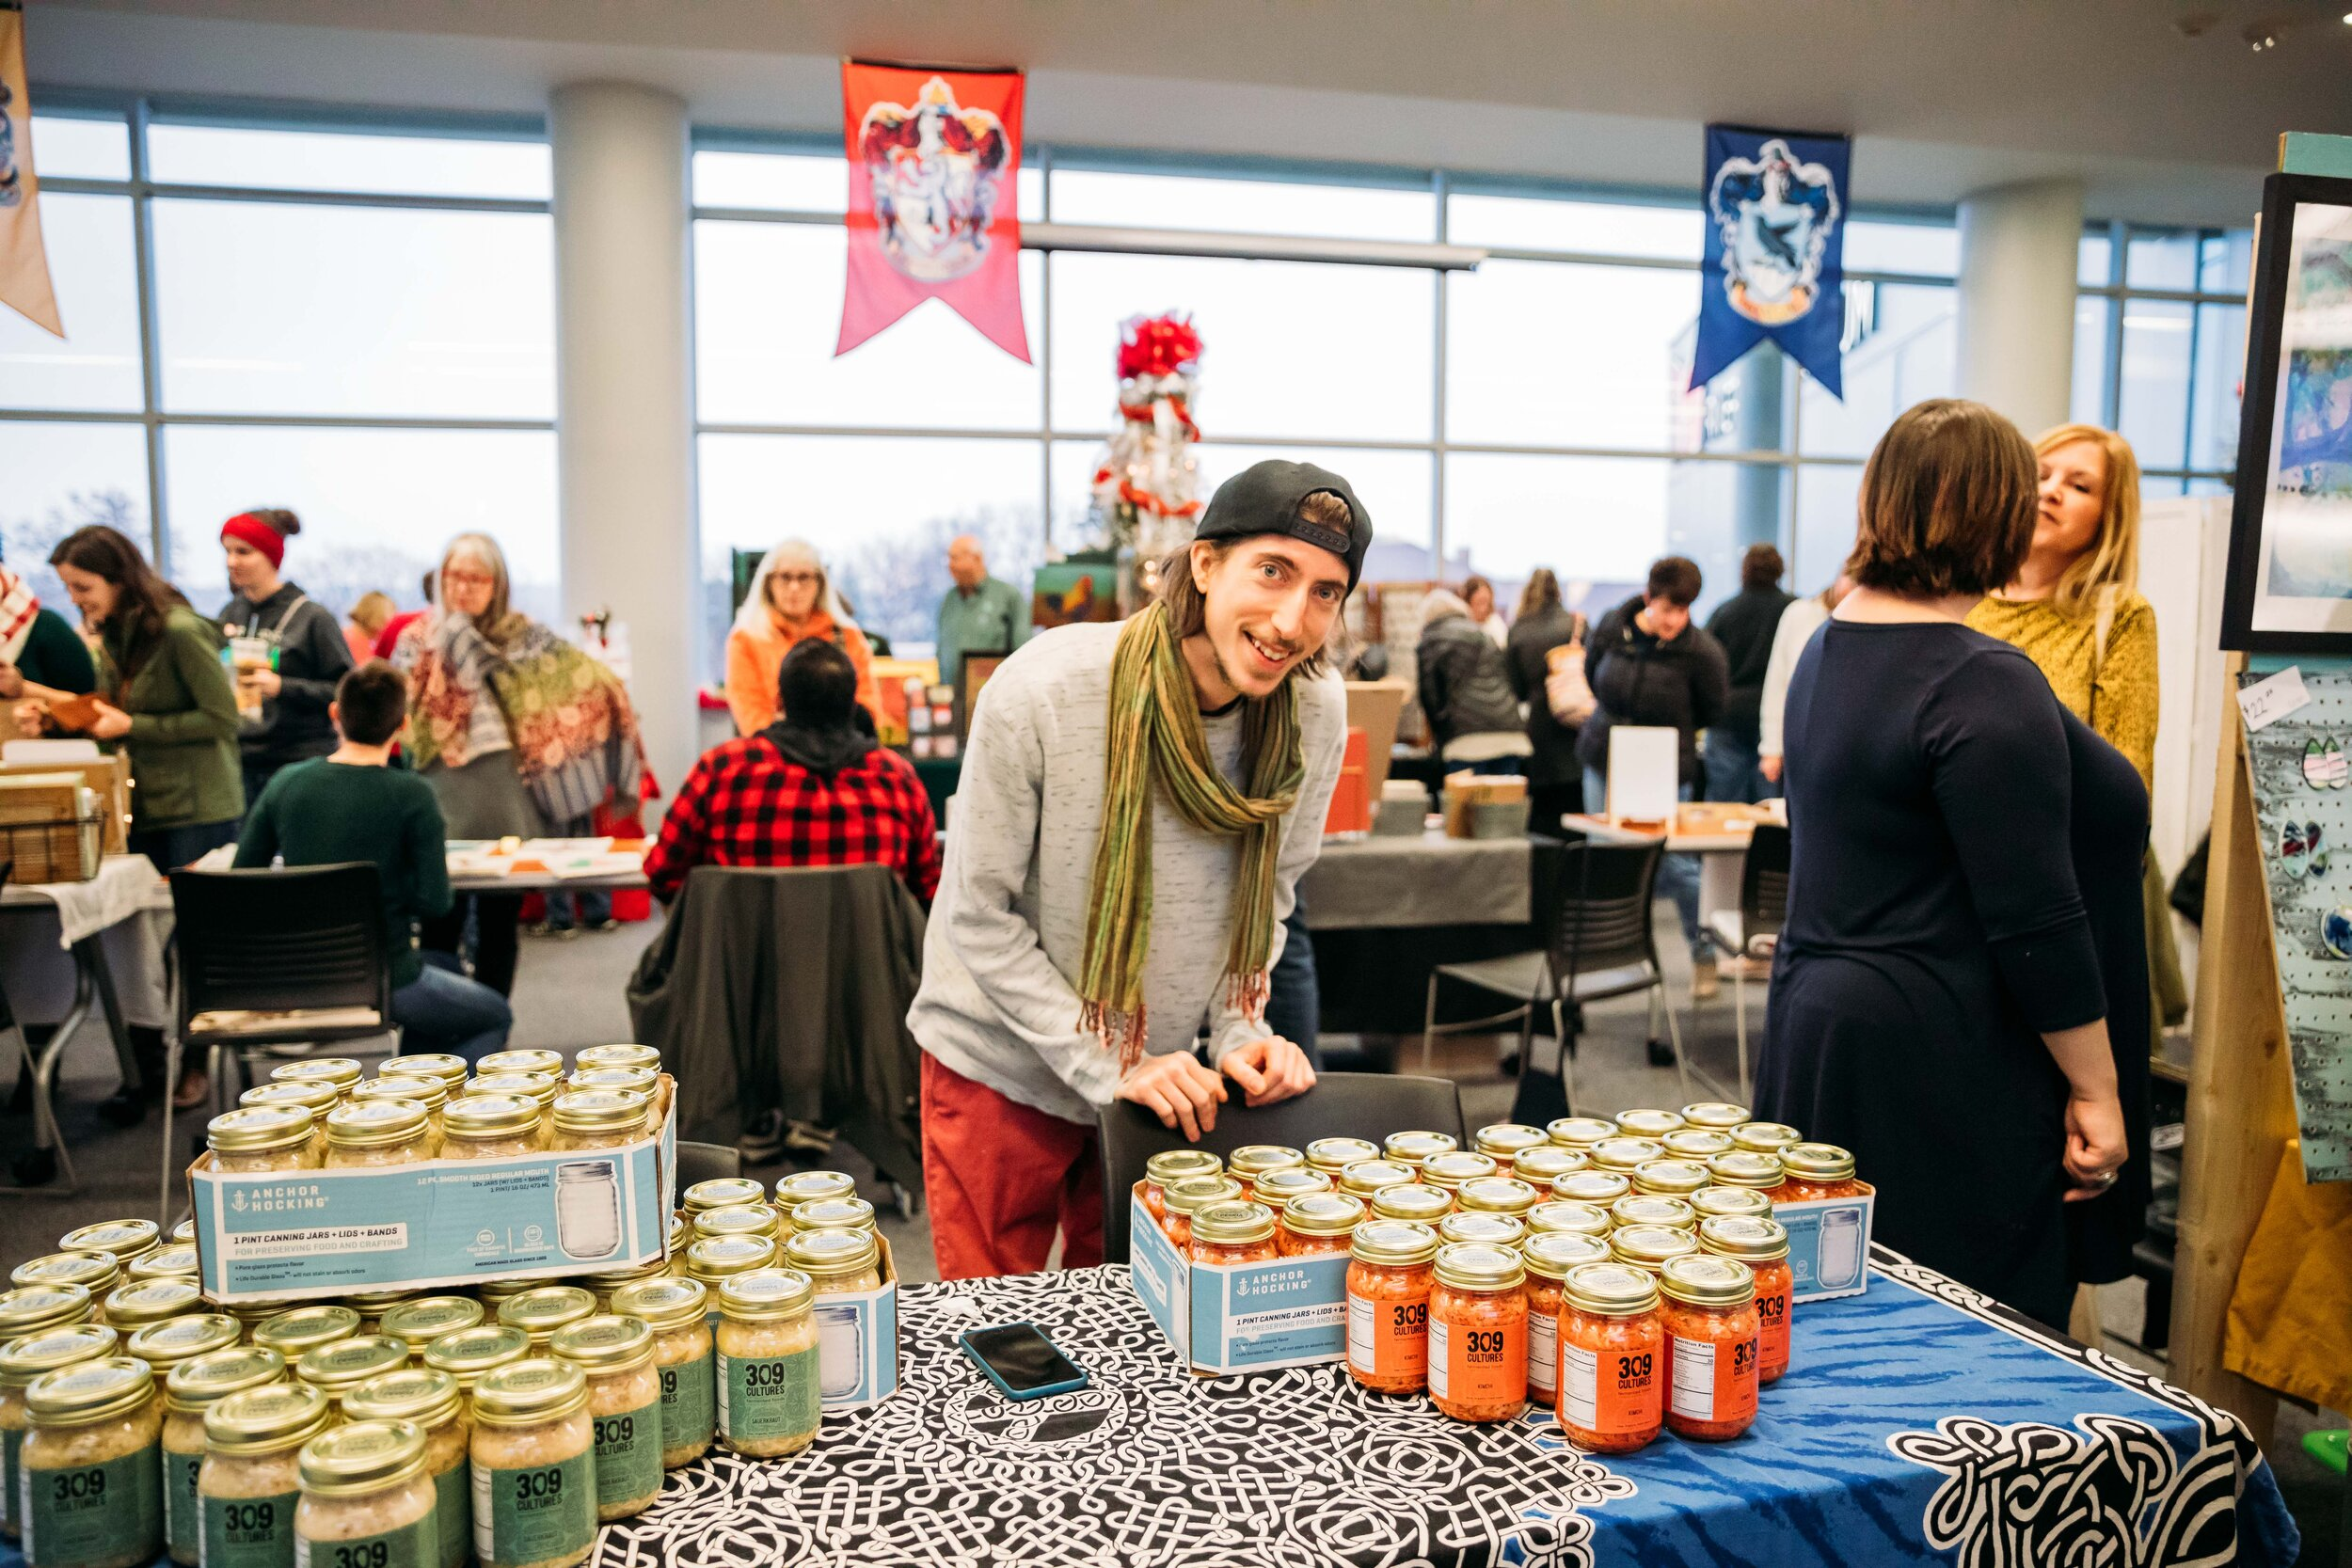 Joe Zich selling 309 Cultures Sauerkraut and Kimchi at his first market, the 25 on the 25th Makers Market, at the Peoria Riverfront Museum in November 2018.